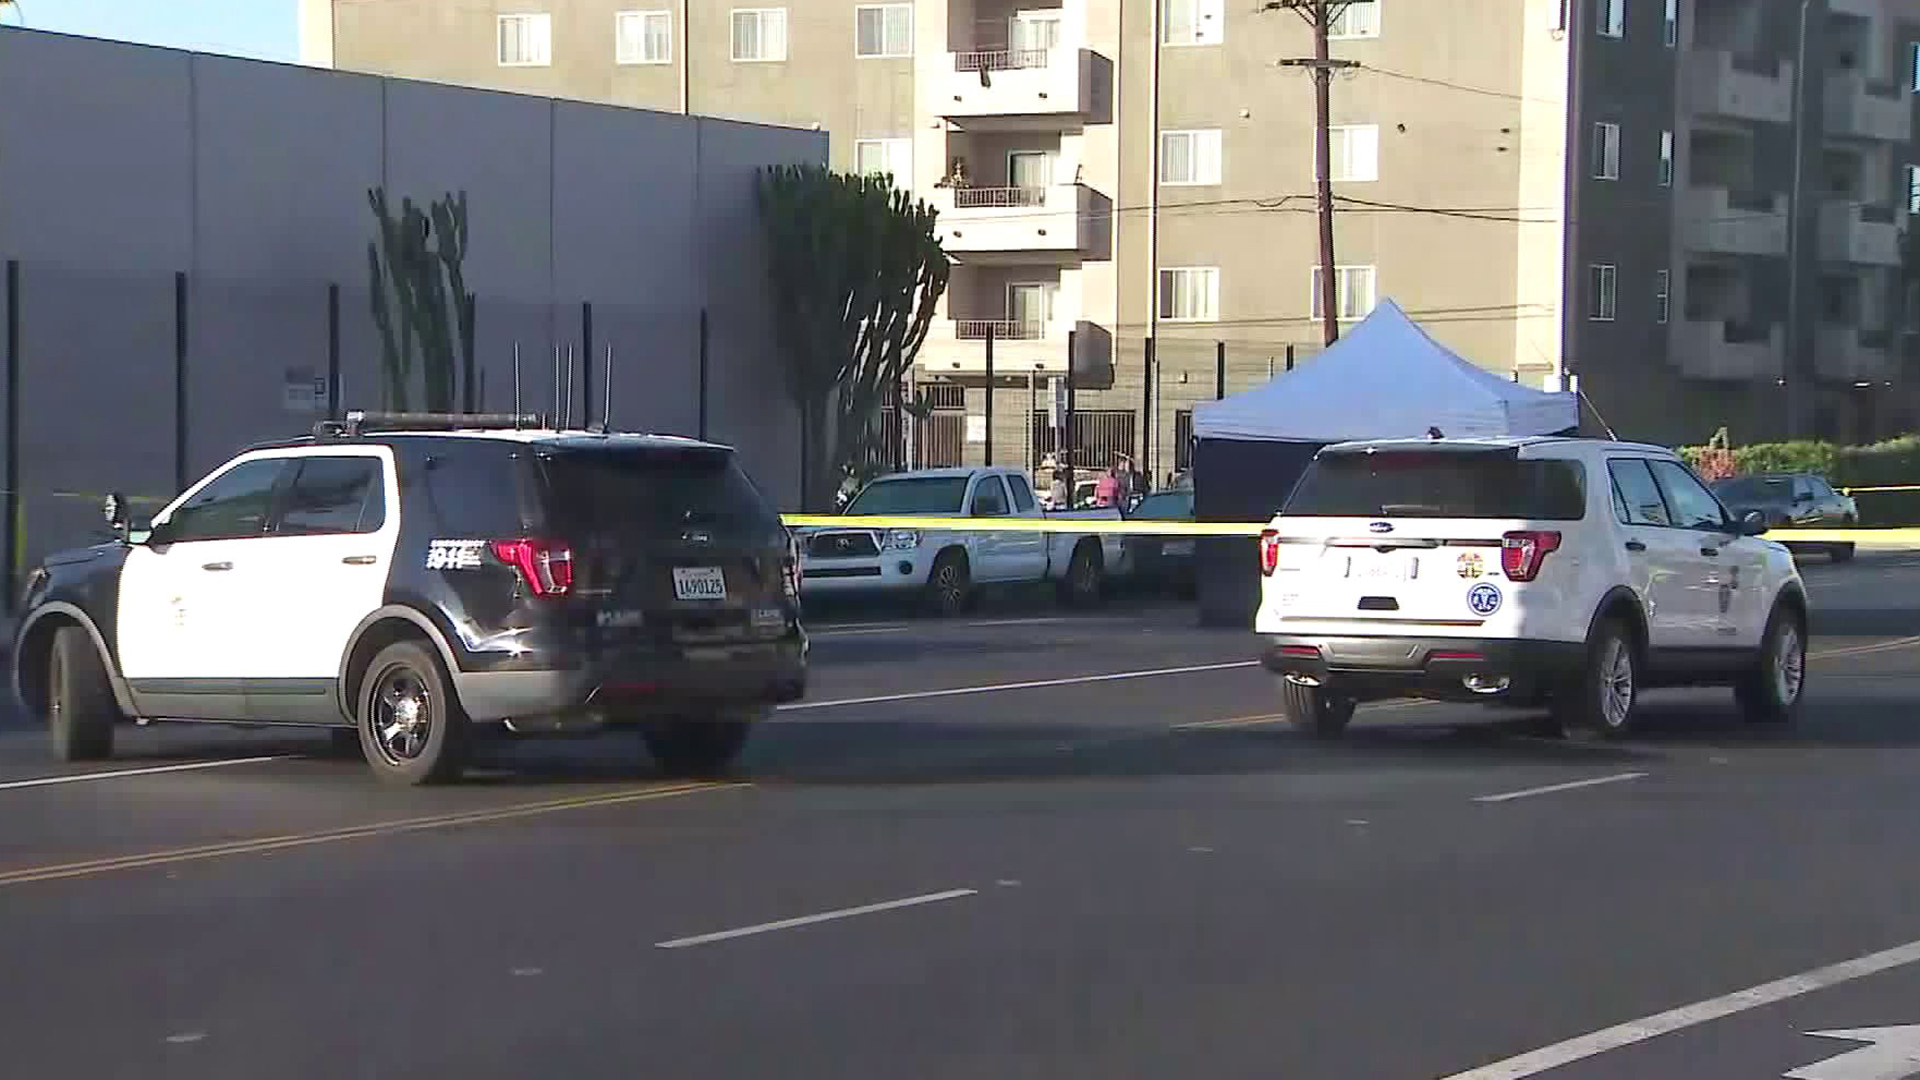 The scene of a fatal hit-and-run crash in Panorama City on Nov. 16, 2019. (Credit: KTLA)